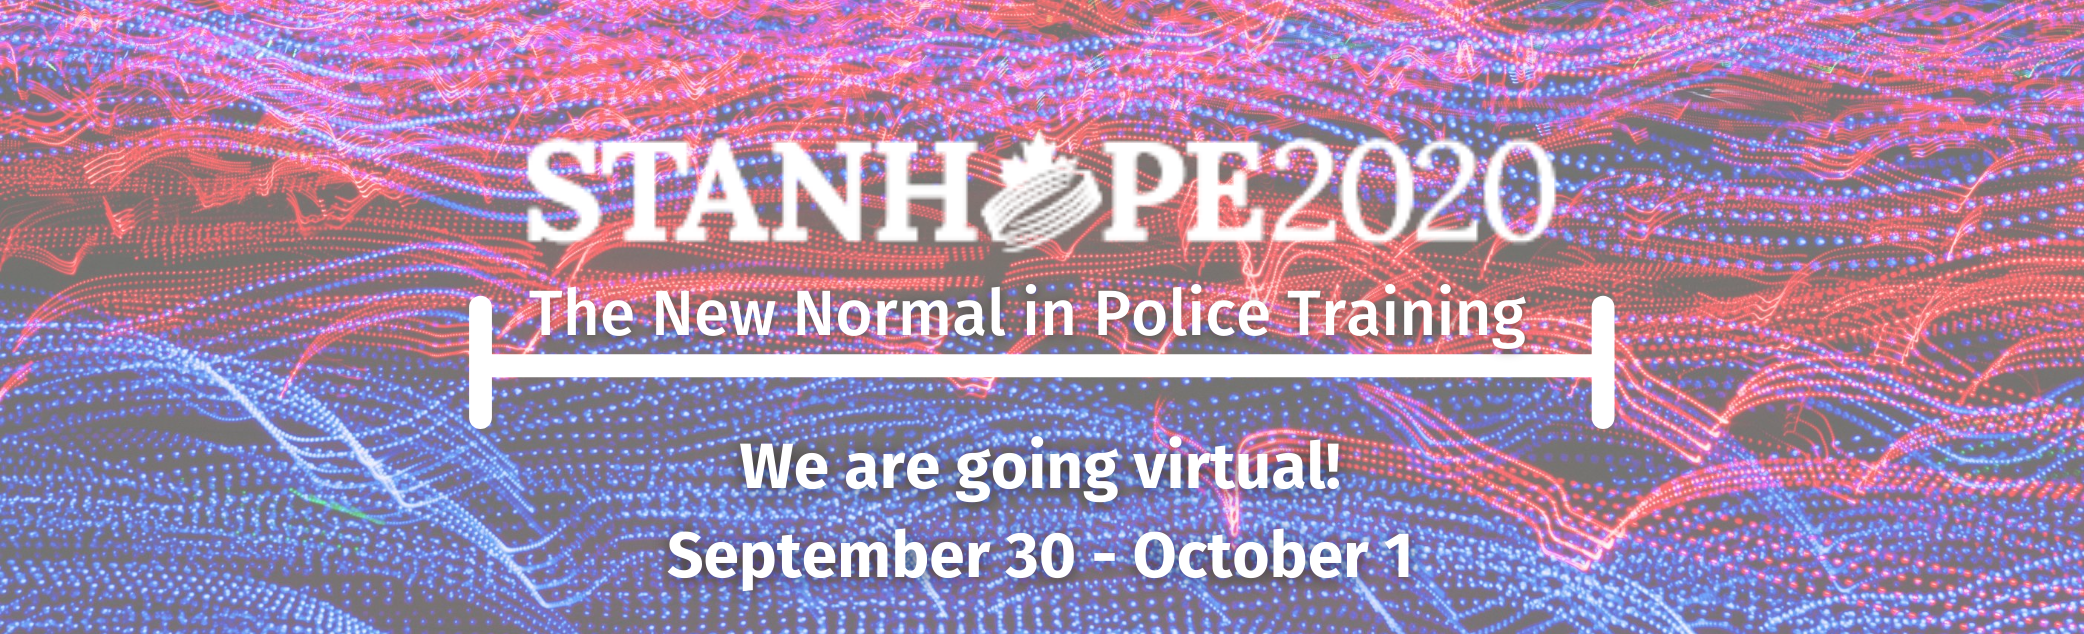 Virtual Stanhope Conference 2020 September 30 - October 1, 2020 (4)